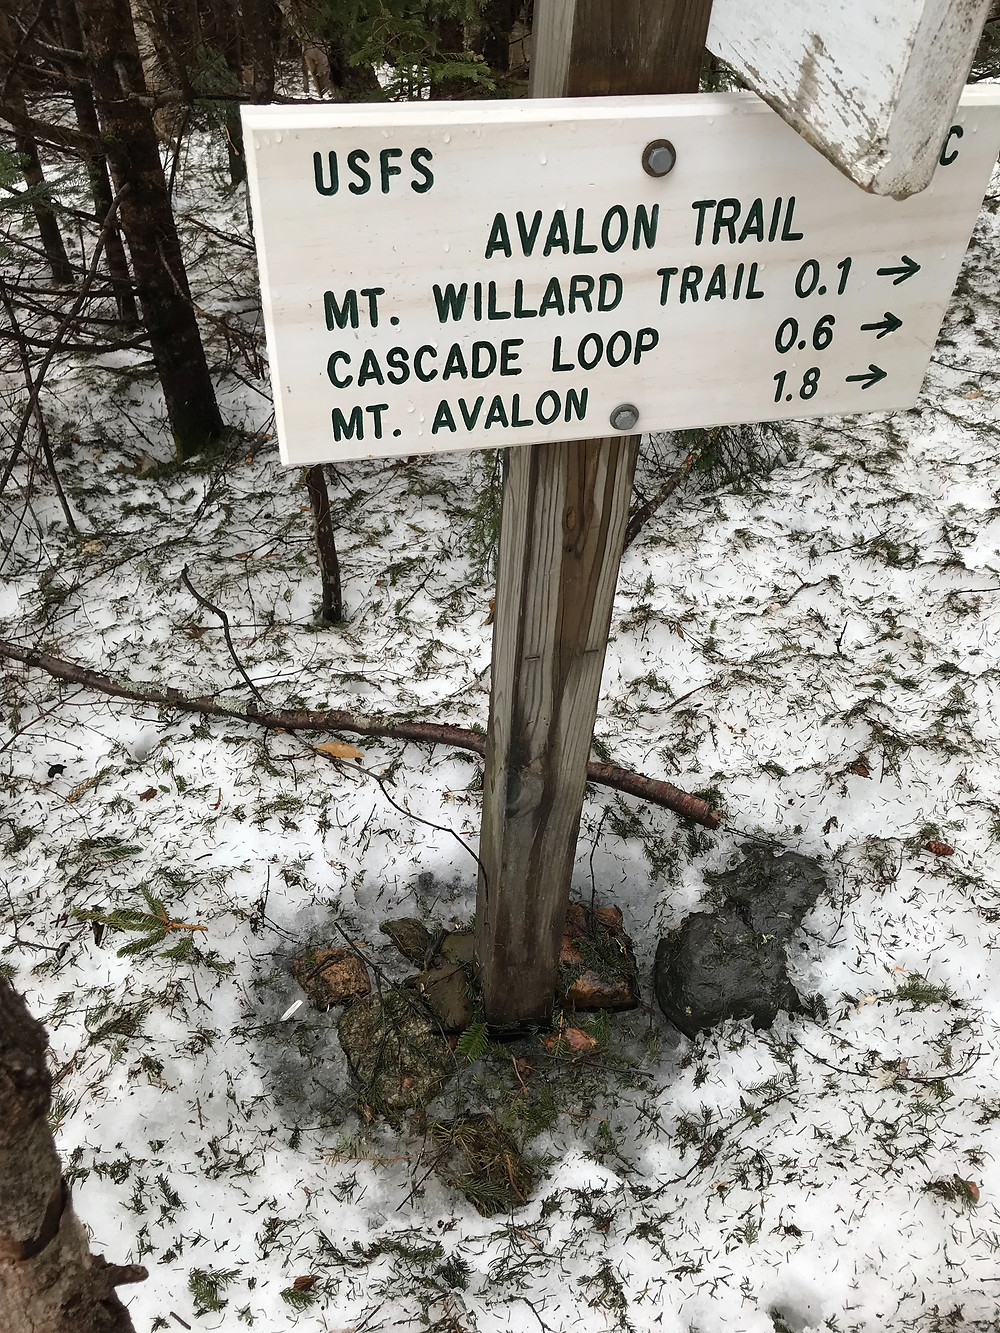 Mt. Willard Trail, Avalon Trail, Cascade loop, Mt. Avalon, Crawford Notch, New Hampshire, AMC